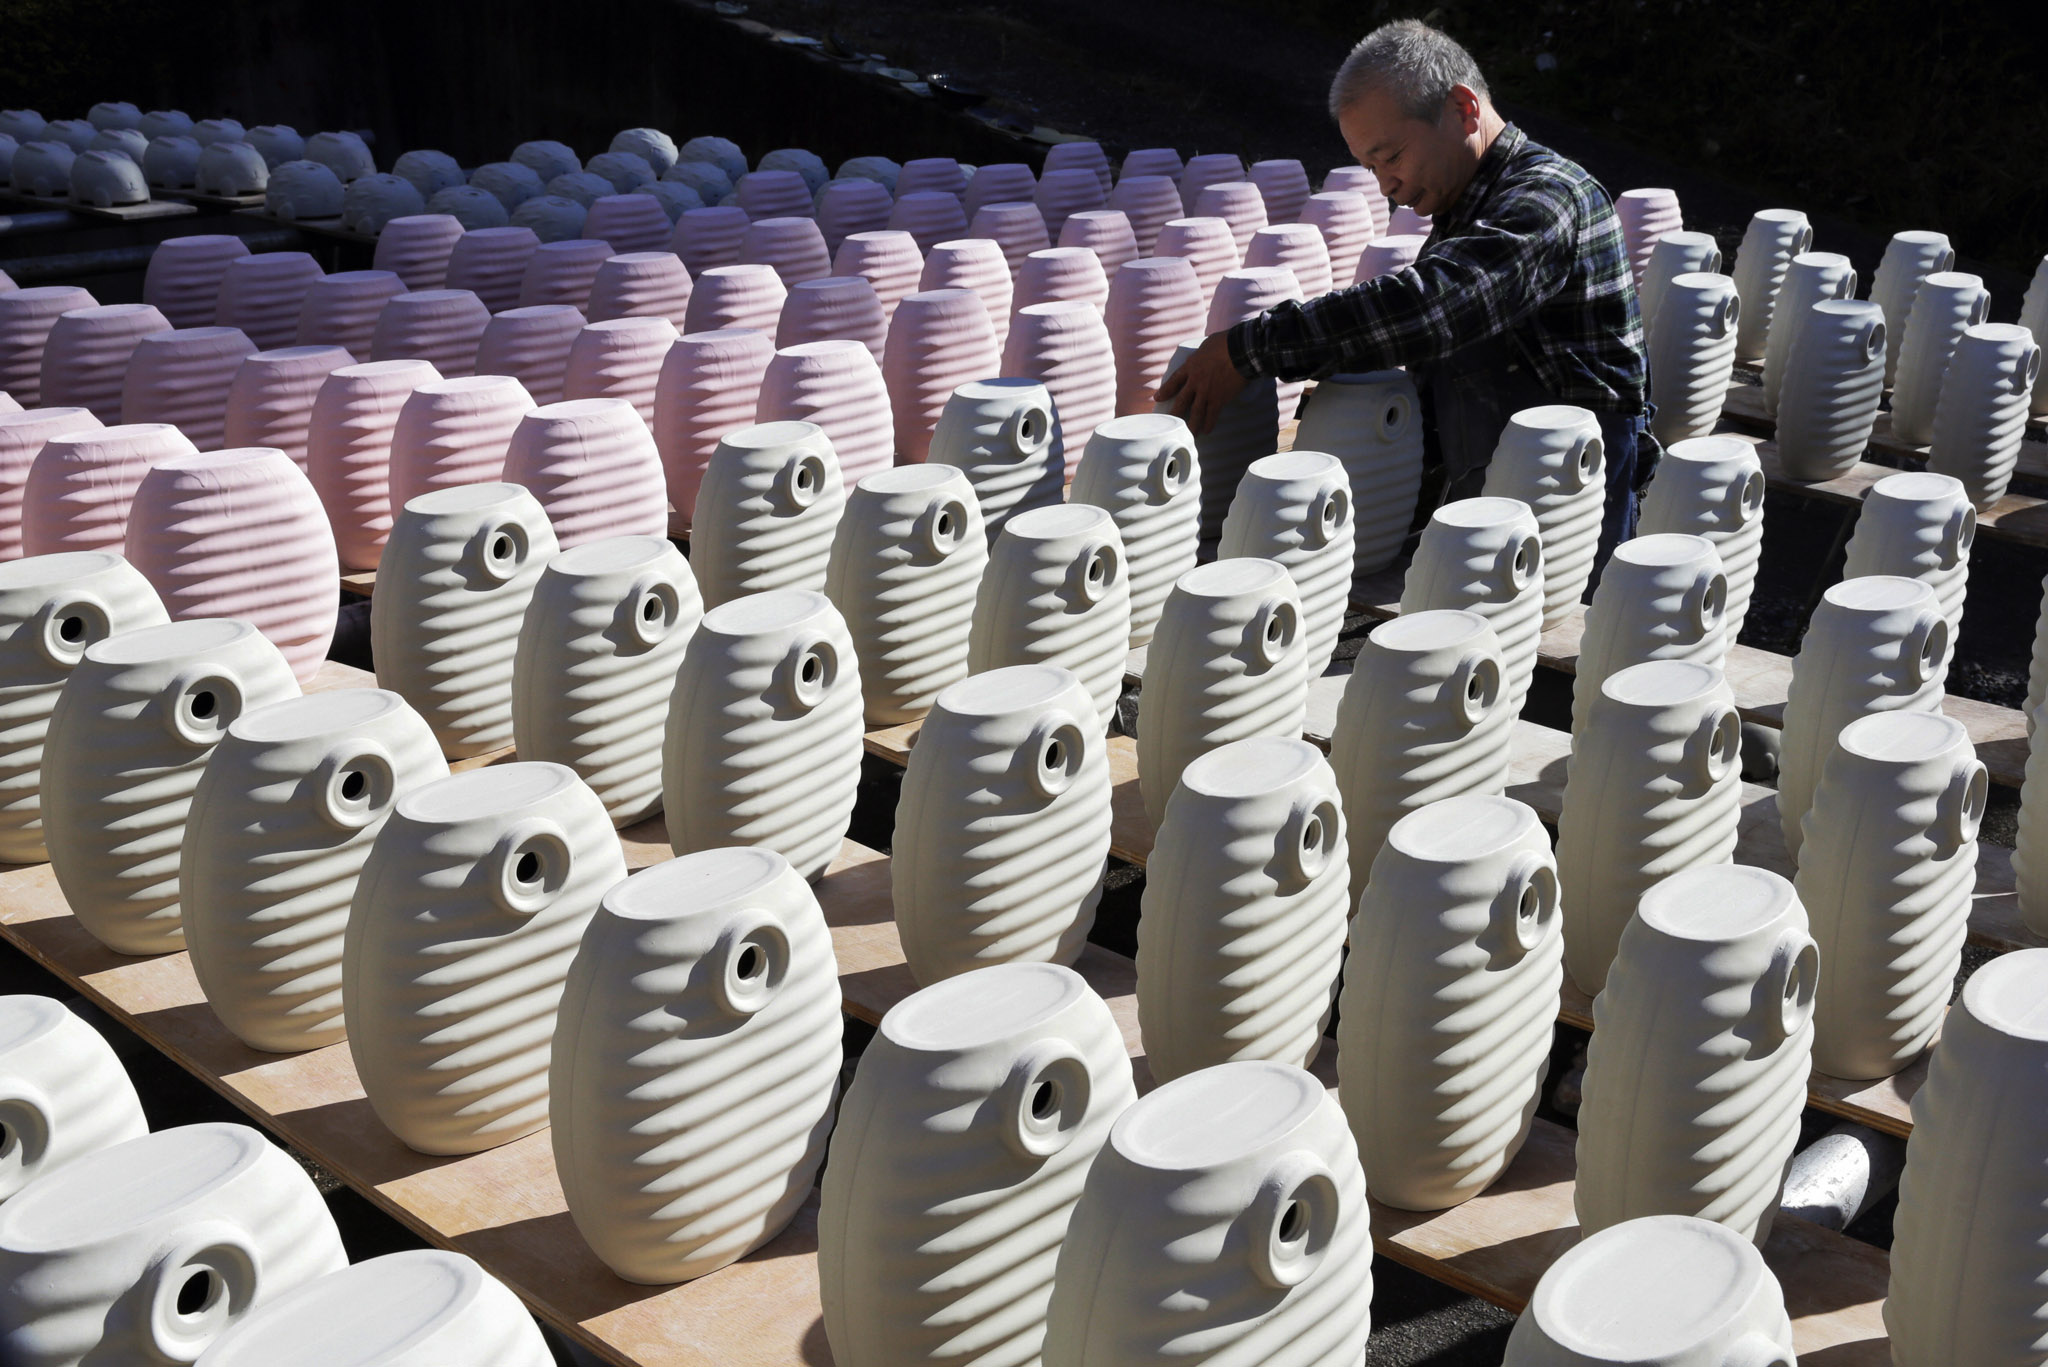 A worker dries ceramic hot water bottles in the sun before they are fired in a kiln in Tajimi, Gifu, Japan. The traditional ceramic bottle became popular again about 10 years ago as people rediscovered they were a great way to keep warm and required minimum use of electricity. They are popular among office workers, who use the ceramic bottles to keep their feet warm